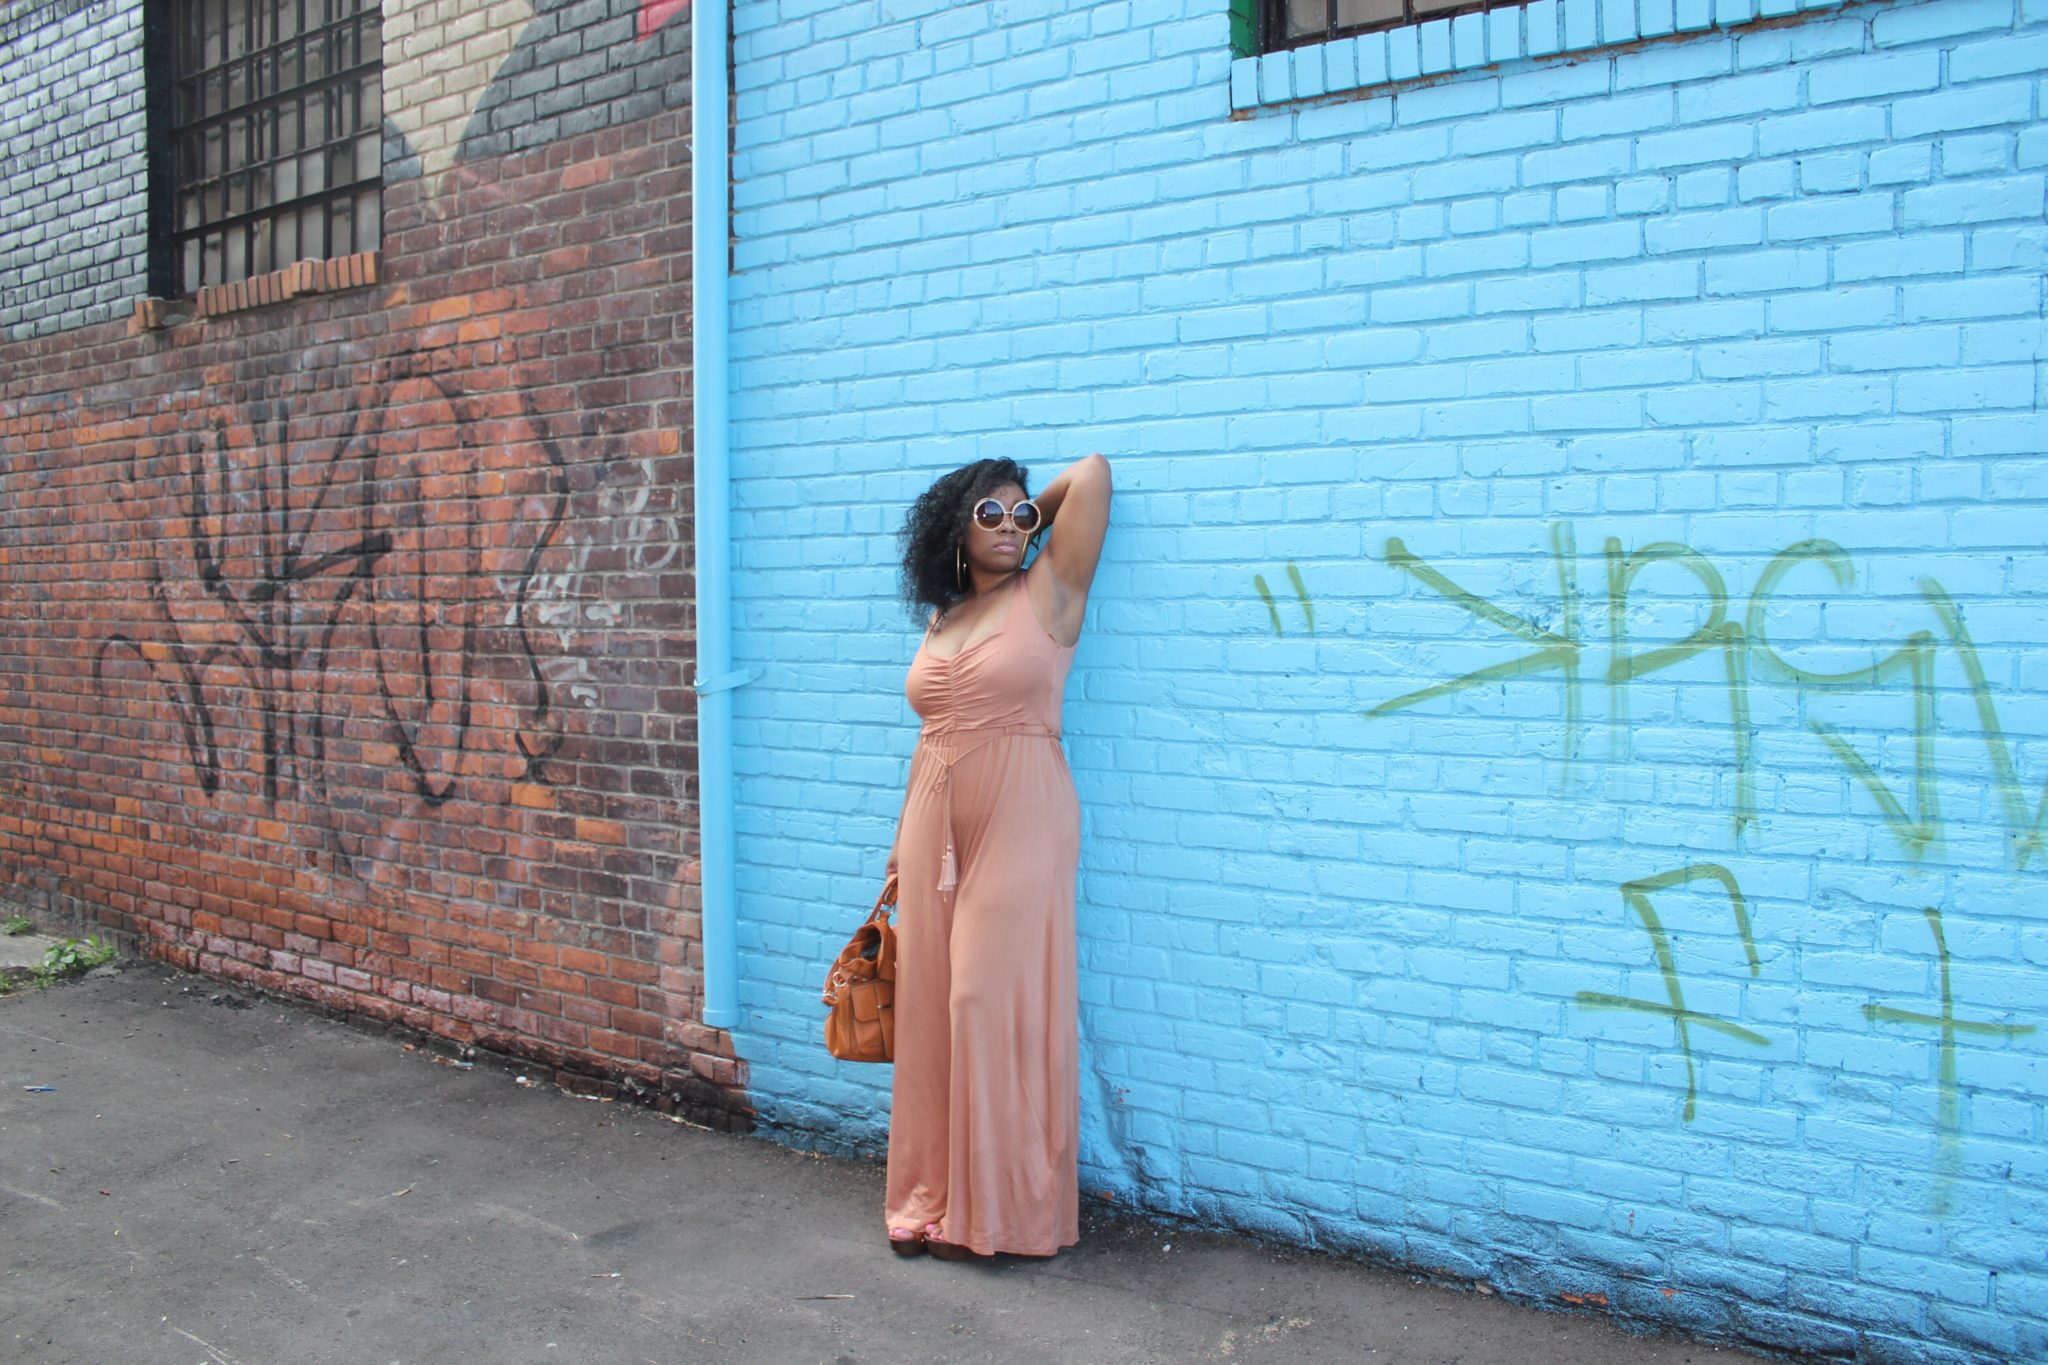 publish_snapshot-20 MY #naturalhair Inspired OutfiteBay Fashion H&M Justfab OOTD